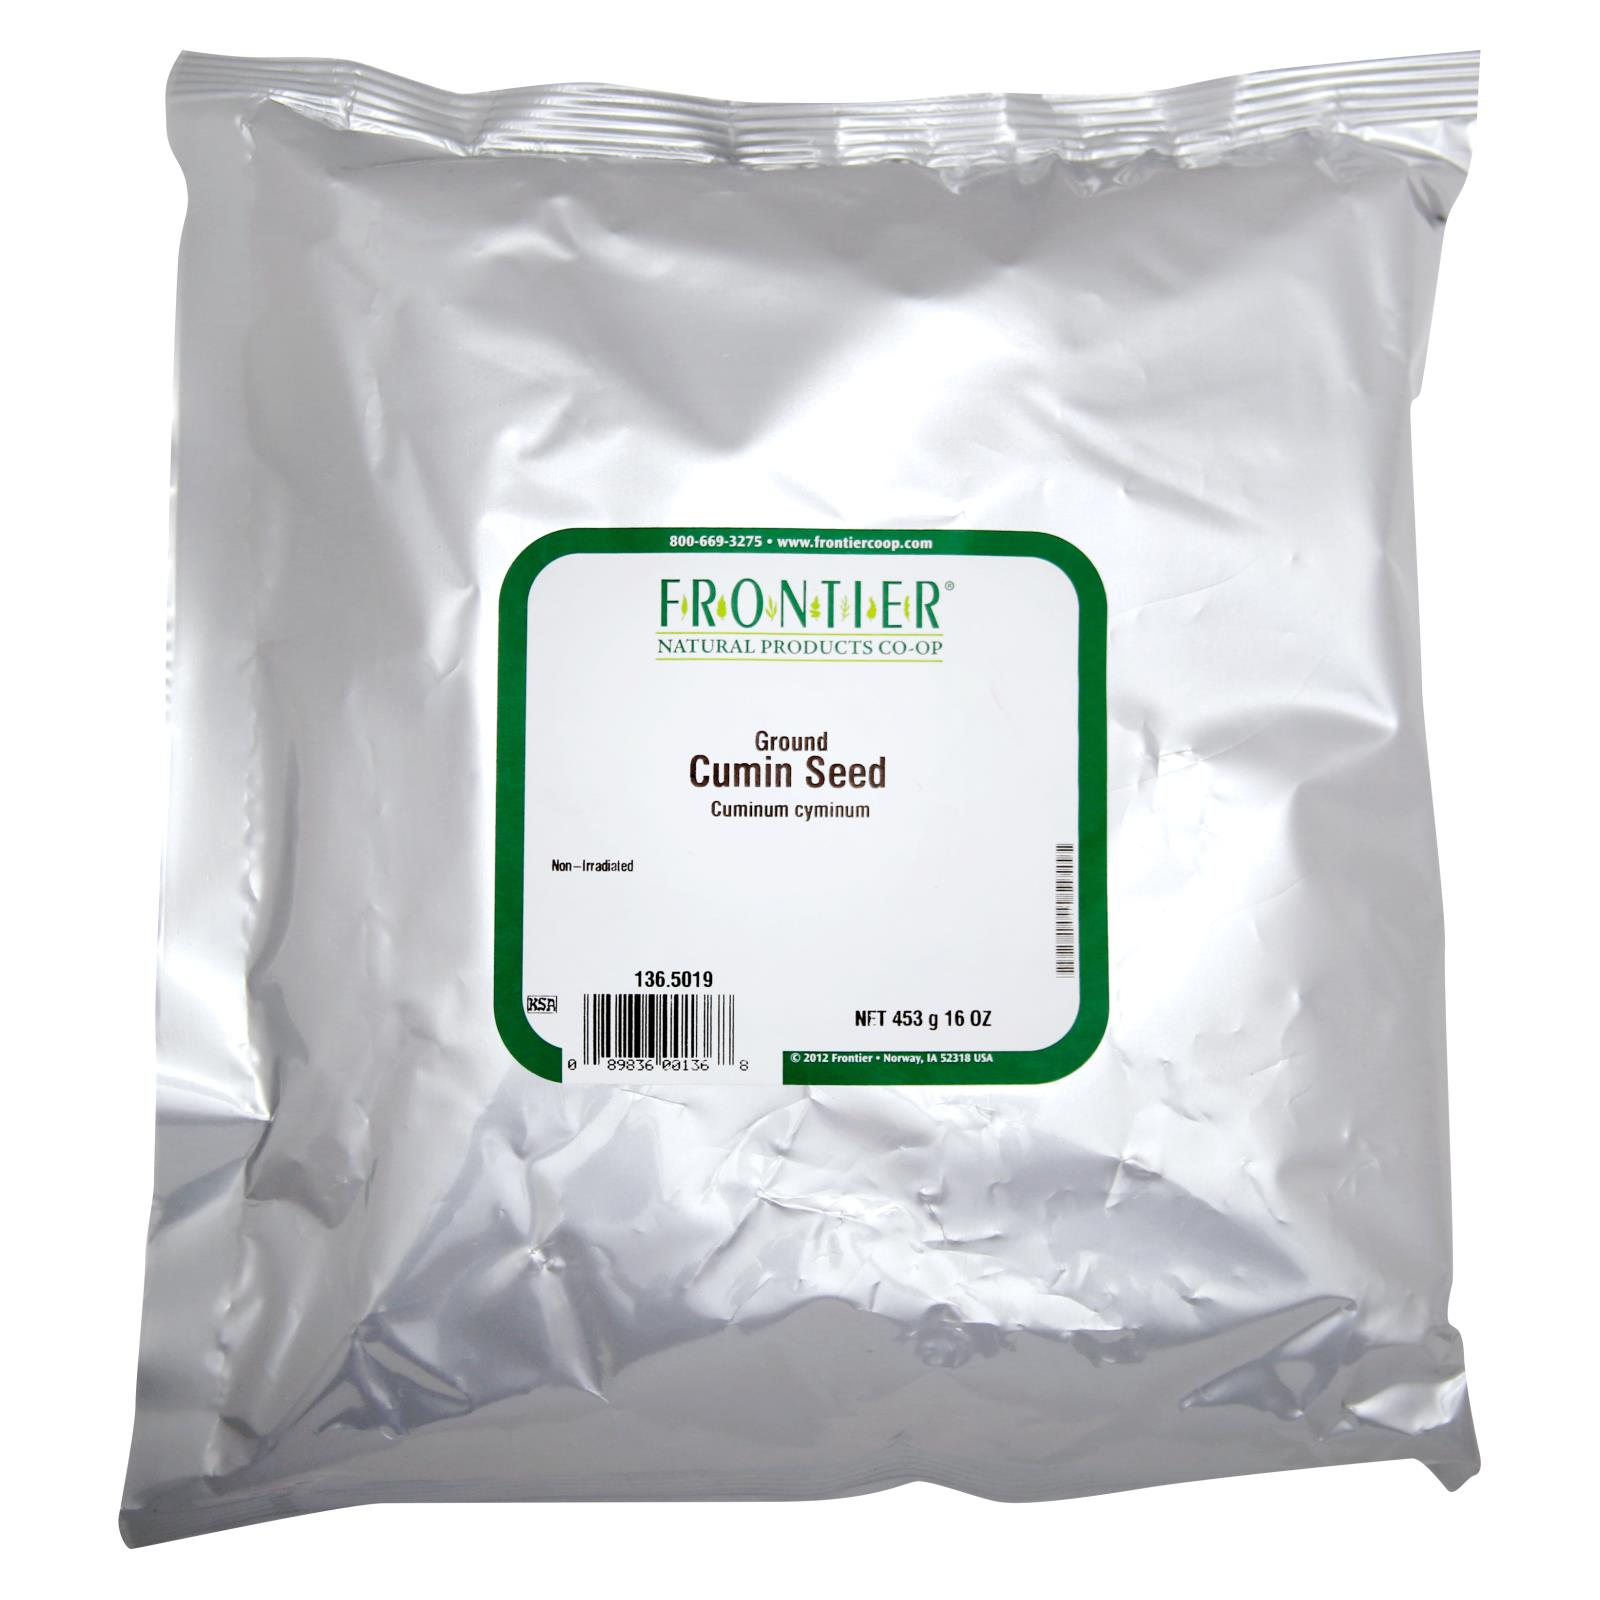 CUMIN SEED GROUND FRONTIER 1 LB